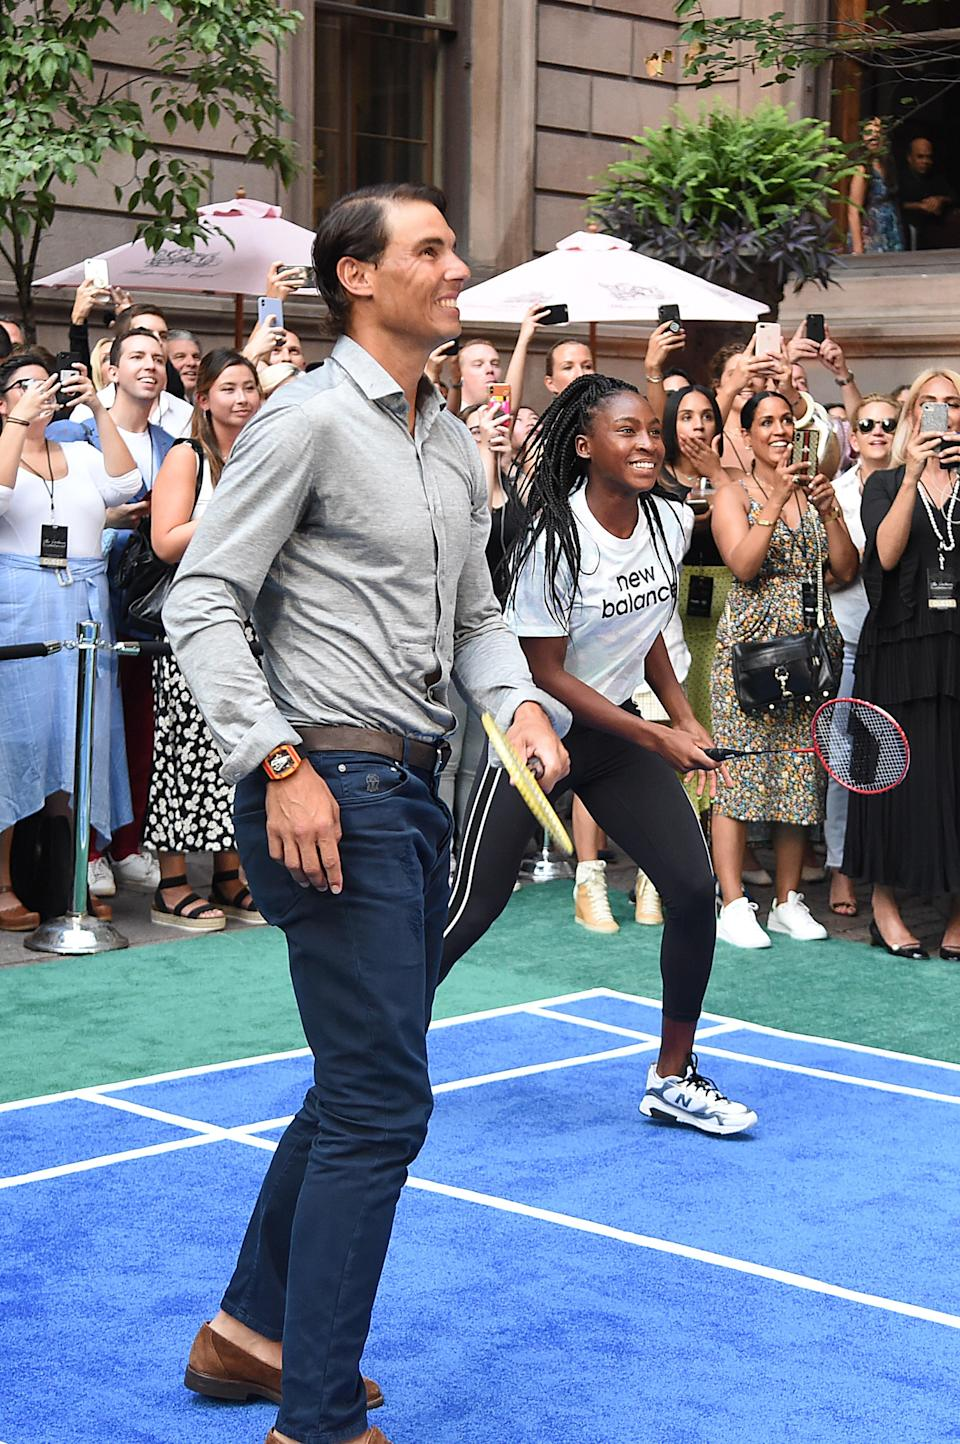 Midway through his match, Nadal's partner, <em>Today</em> cohost Dylan Dreyer, subbed out and teen phenom Gauff took the court.